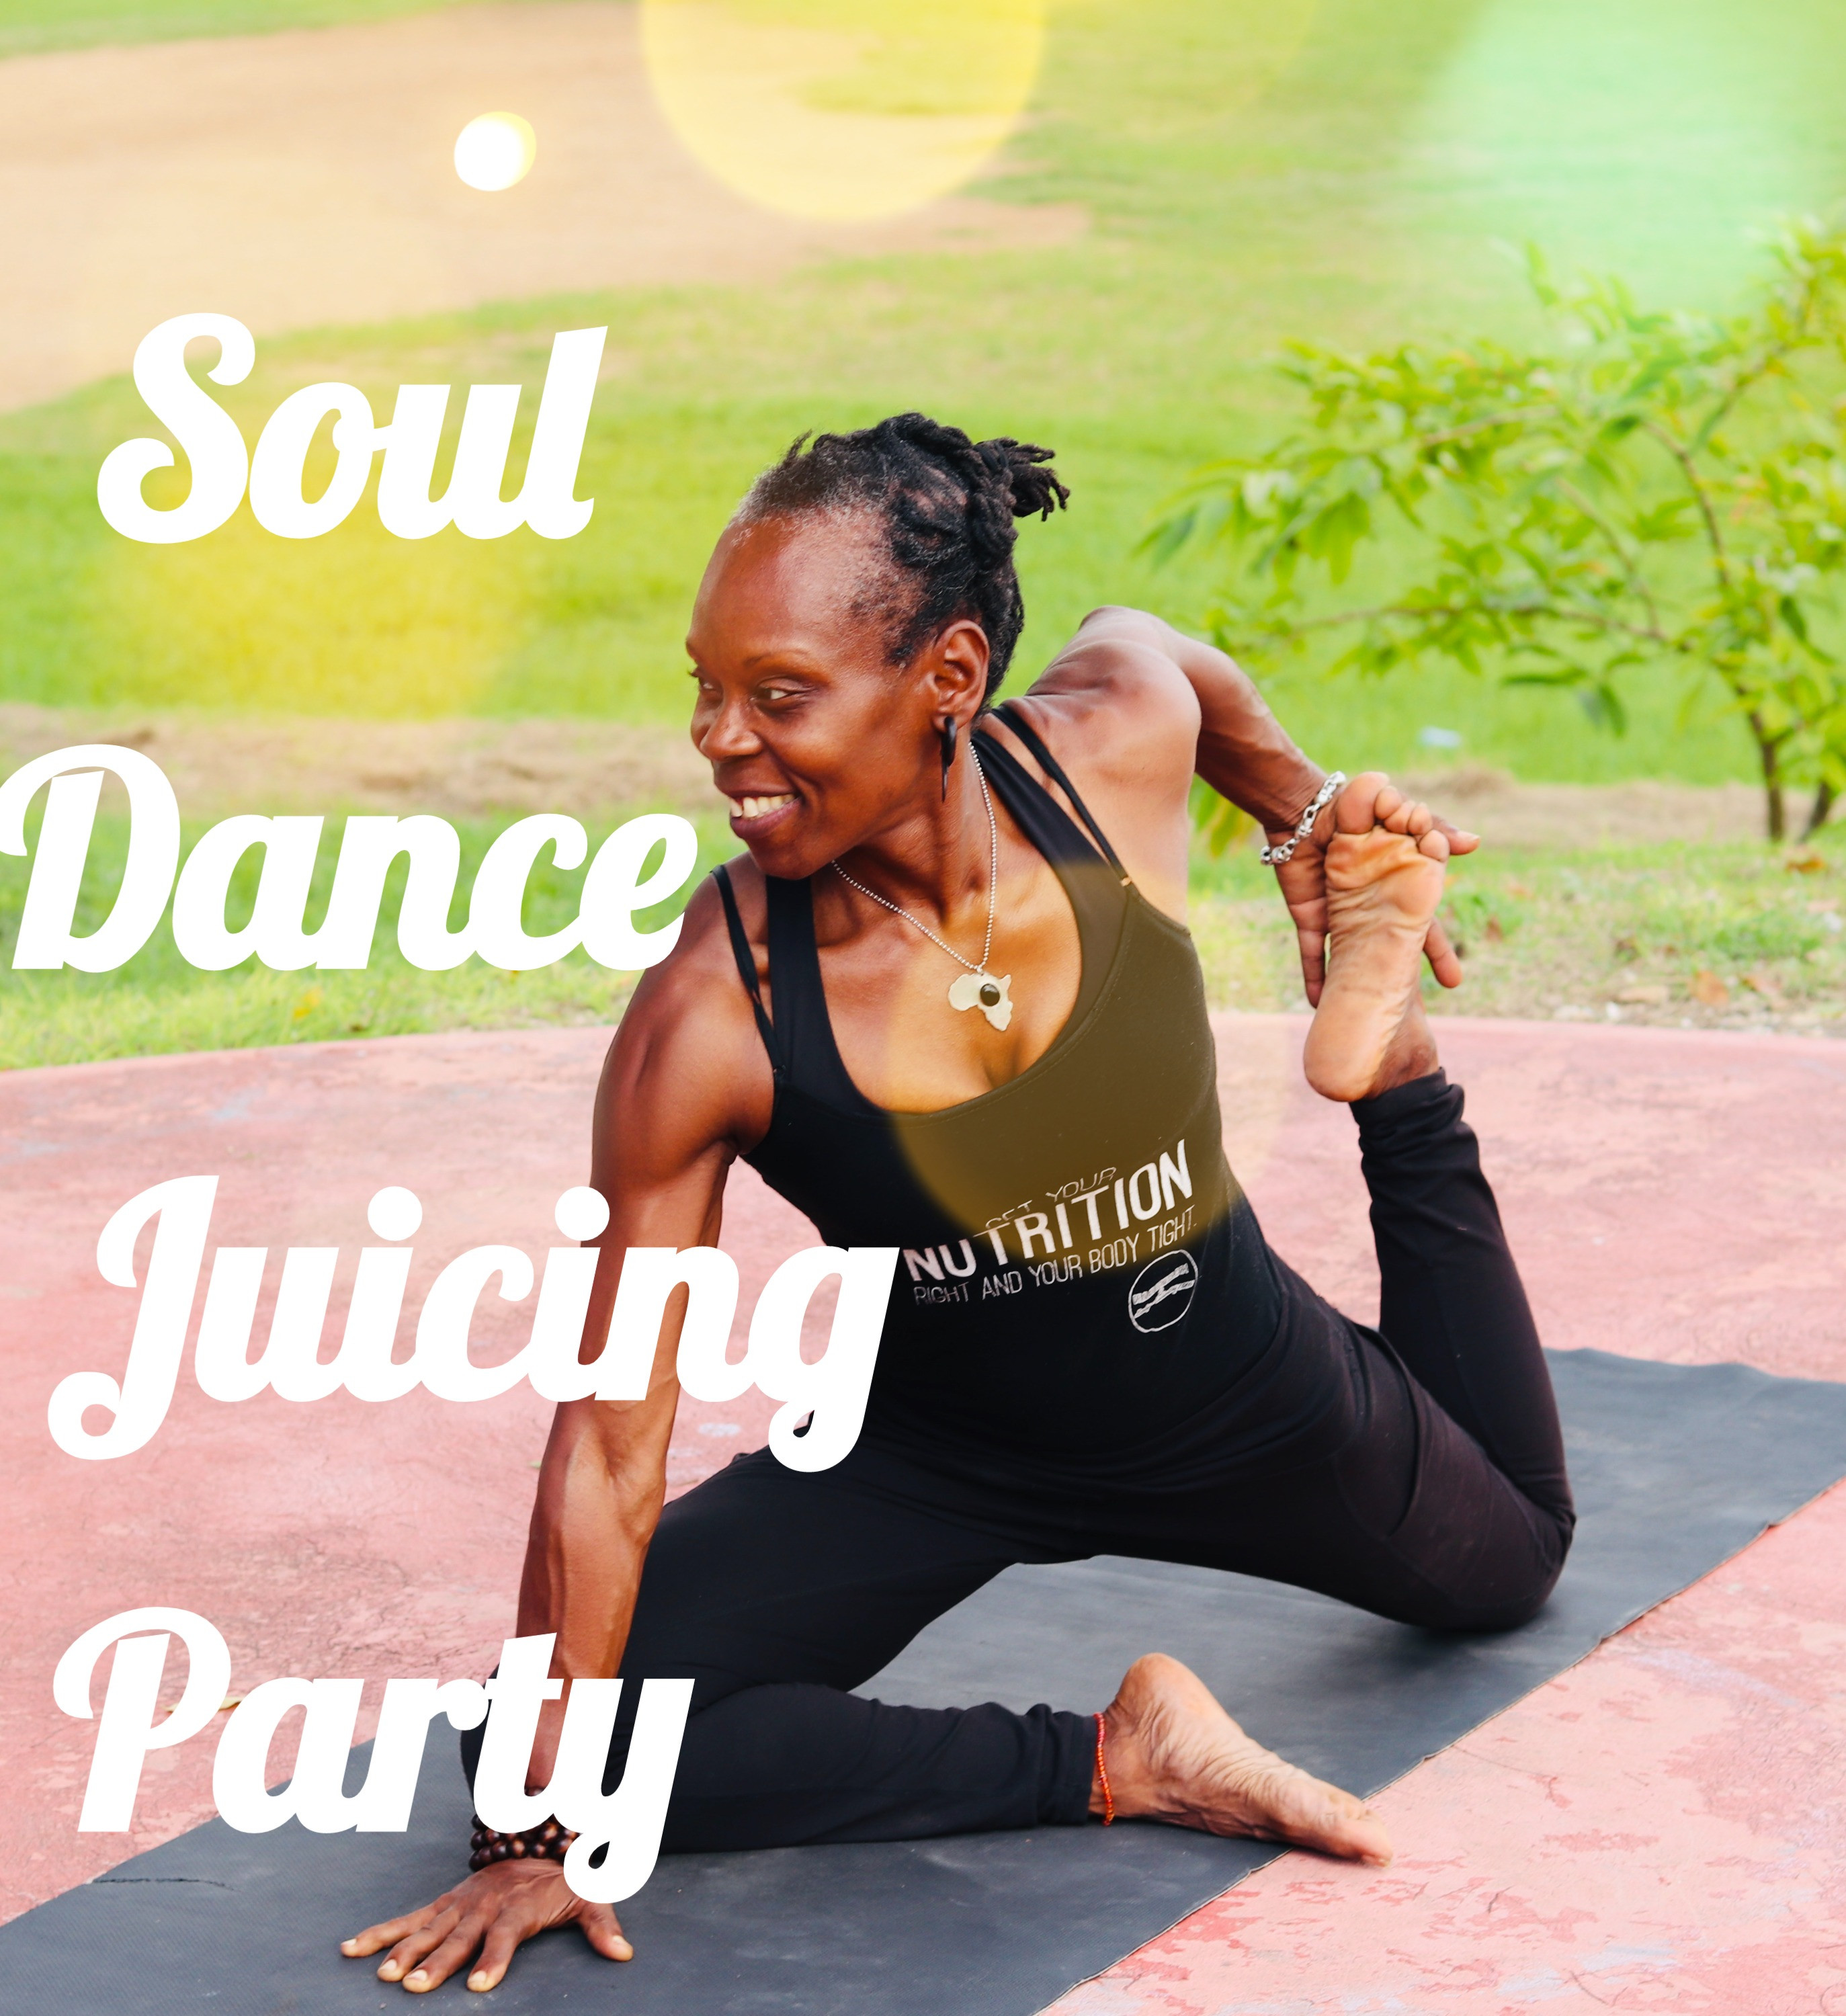 Delilah Fitness Dance Juicing Party